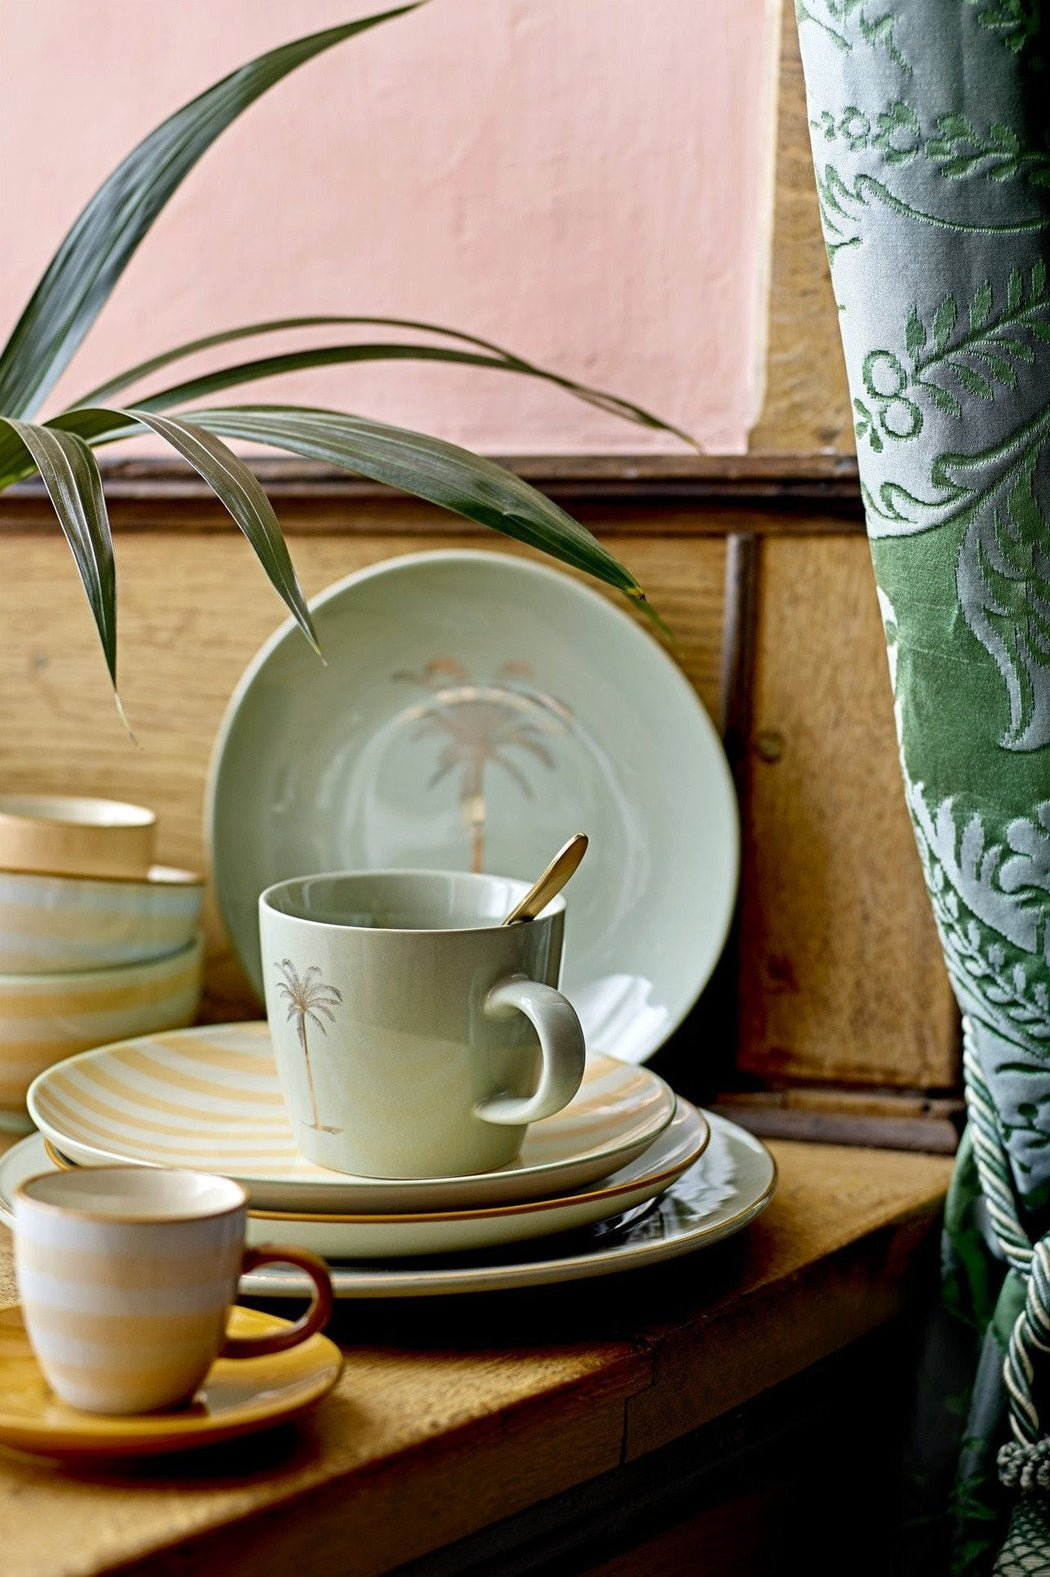 Tropical Miami, Serveware, Bloomingville - 3LittlePicks